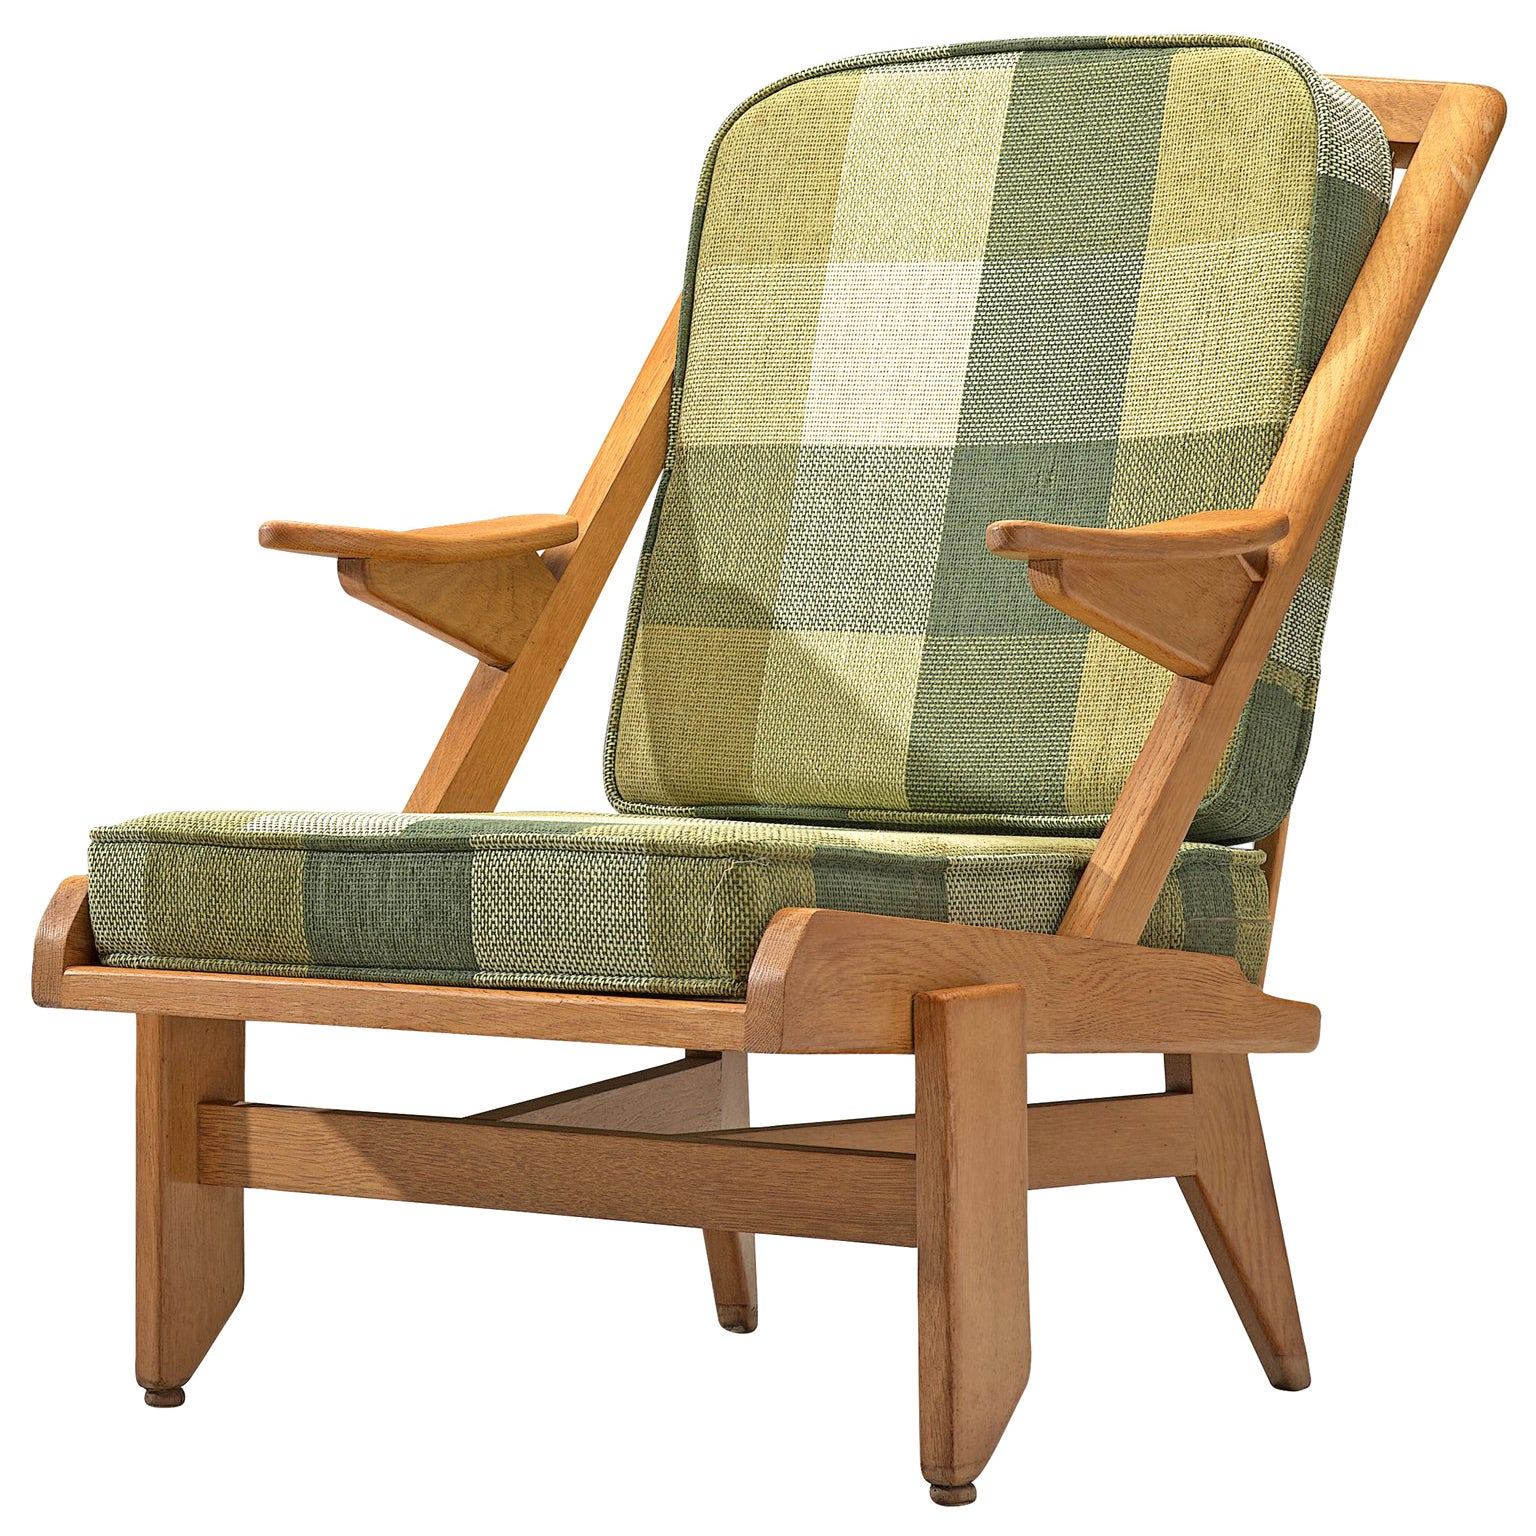 Guillerme et Chambron Lounge Chair with Green Checkered Upholstery